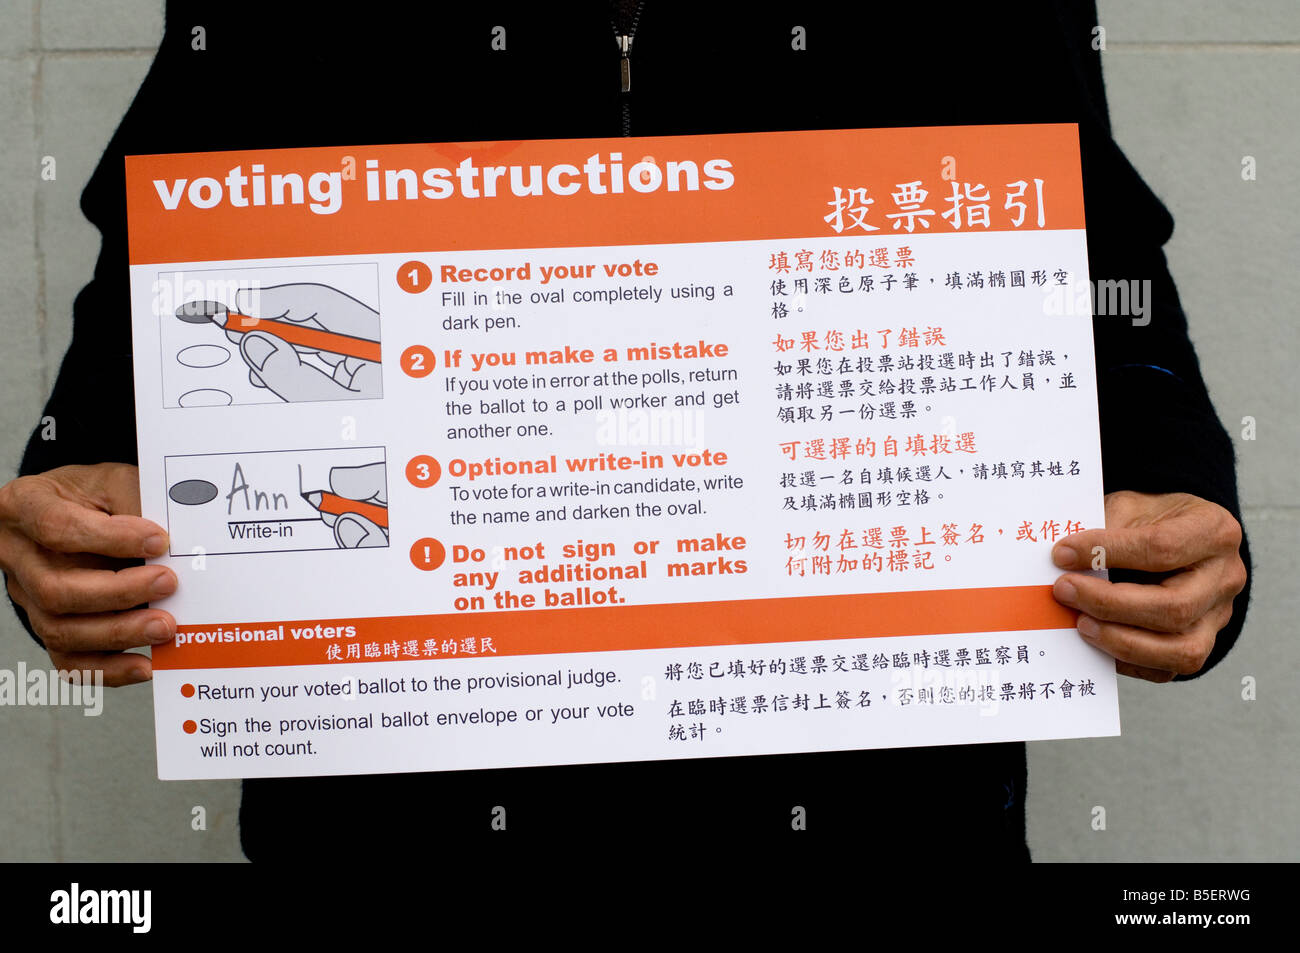 Voting instructions chart held by an American voter on November the 4th, 2008. General Election. - Stock Image